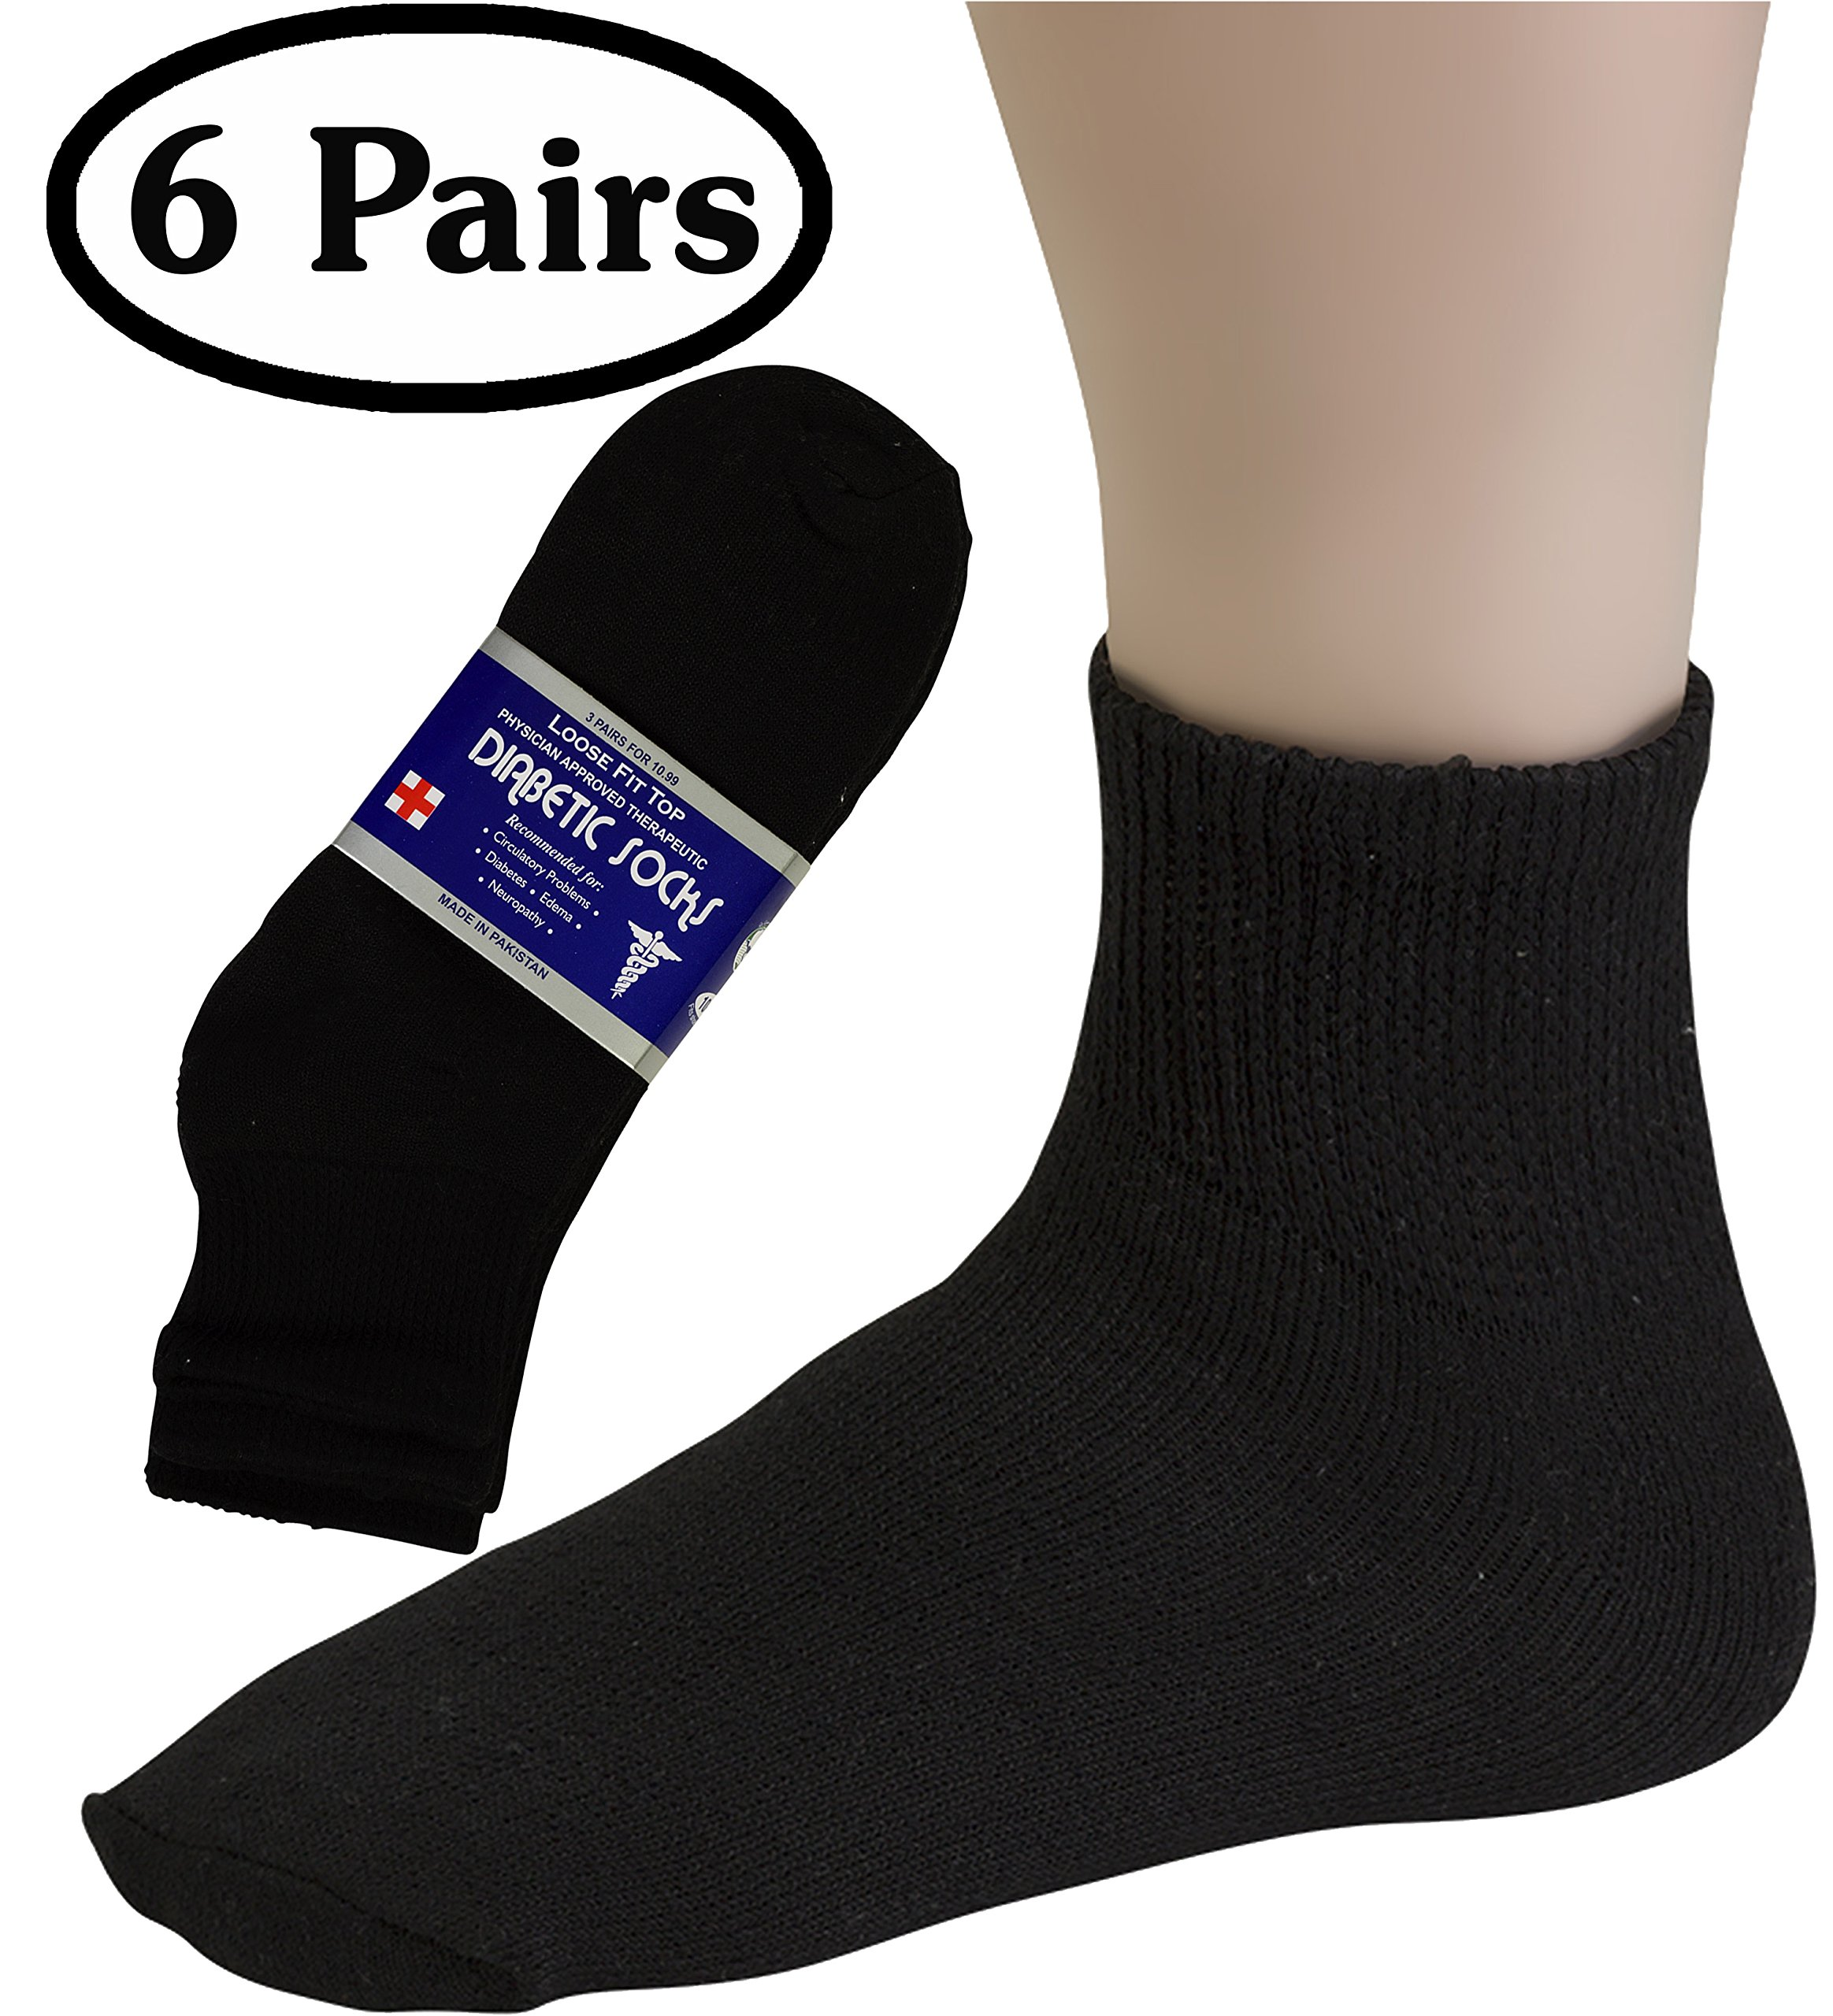 b5fe9d99493 Amazon.com  Diabetic Socks Womens Cotton 6-Pack Ankle Black by DEBRA  WEITZNER  Health   Personal Care